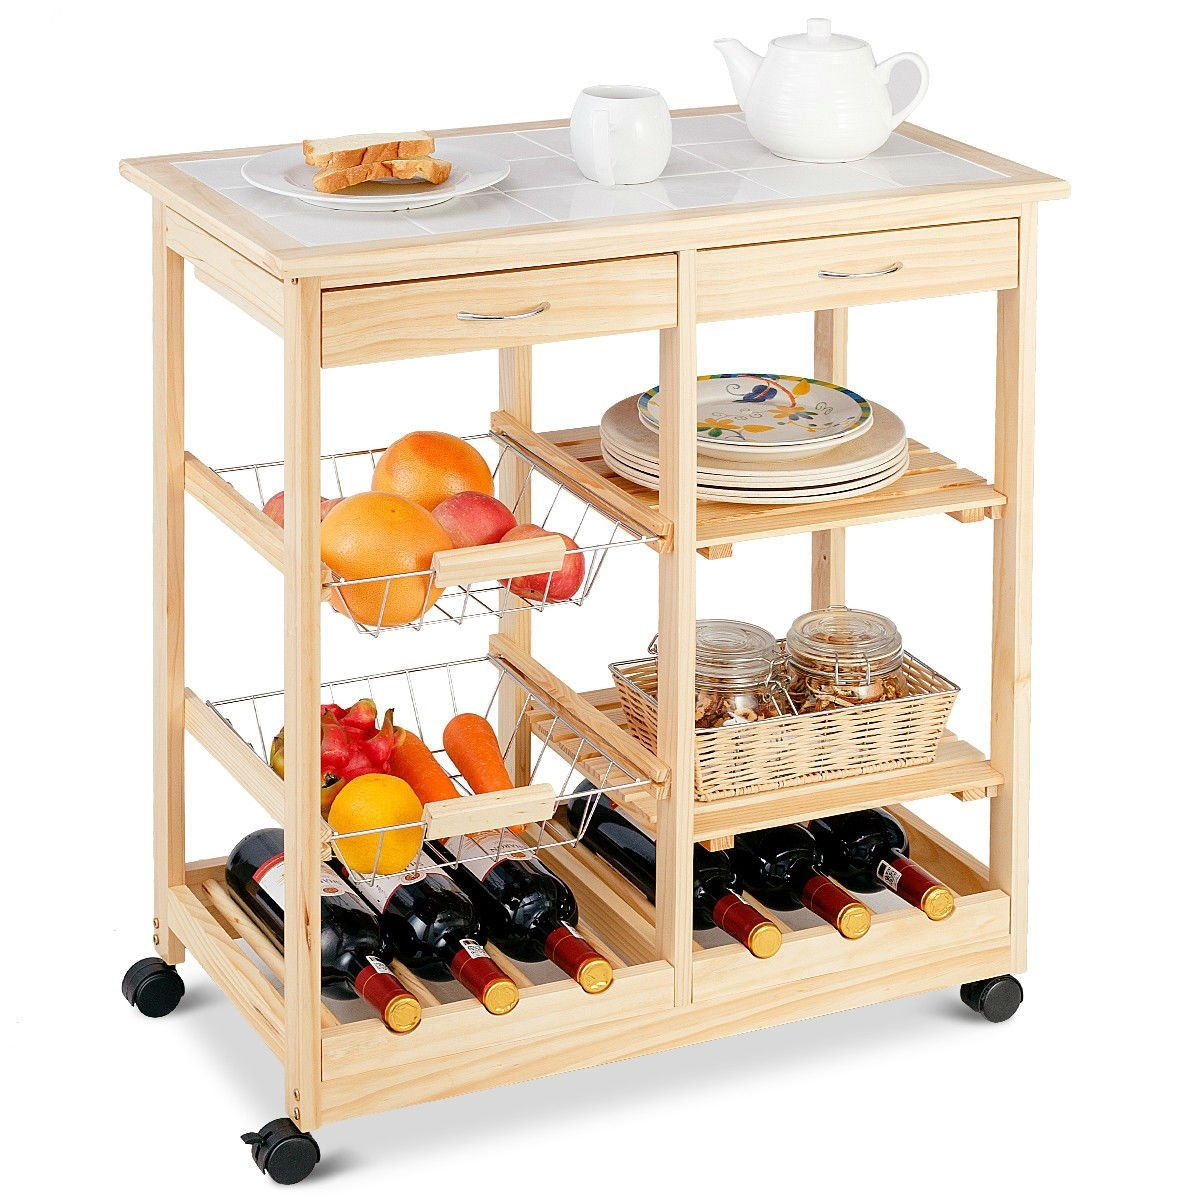 Mobile Wooden Kitchen Cart With Storage Drawers And Wine Rack Fastfurnishings